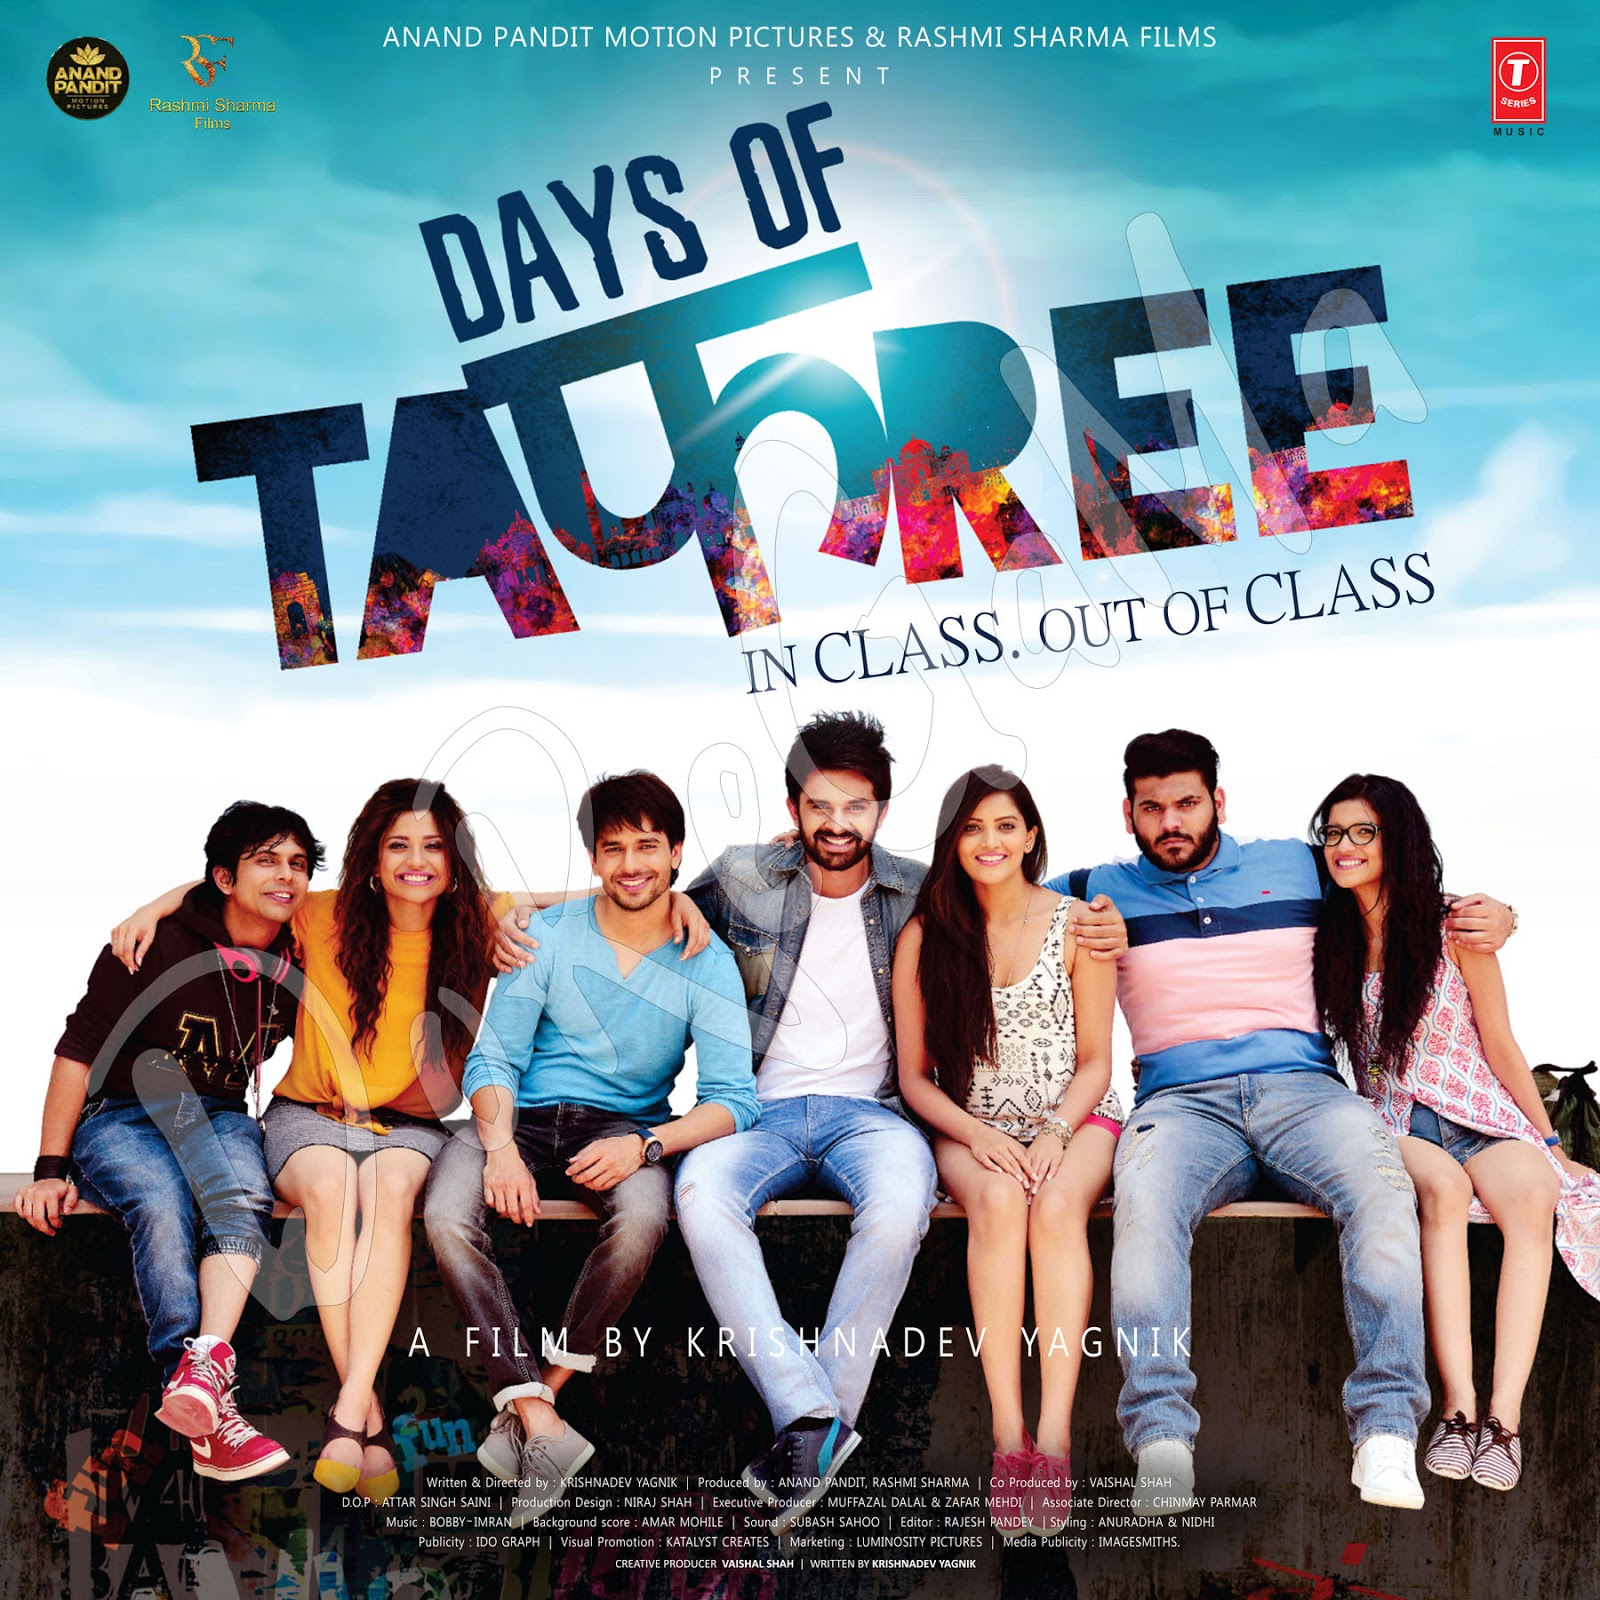 Days-Of-Tafree-2016-Hindi-Movie--CD-Front-Cover-Poster-Wallpaper-HD